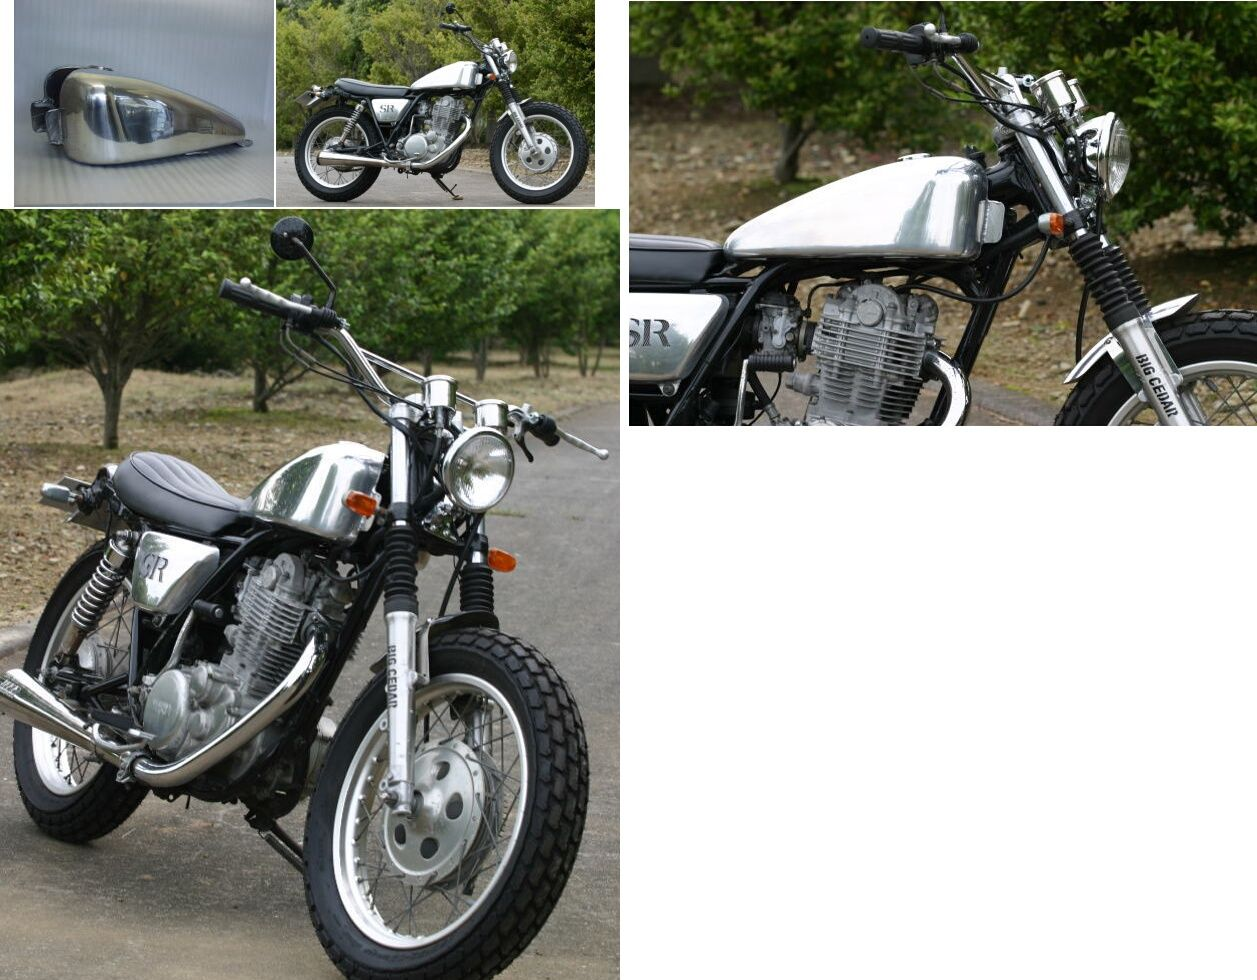 Stretch Sportster 鋁合金油箱